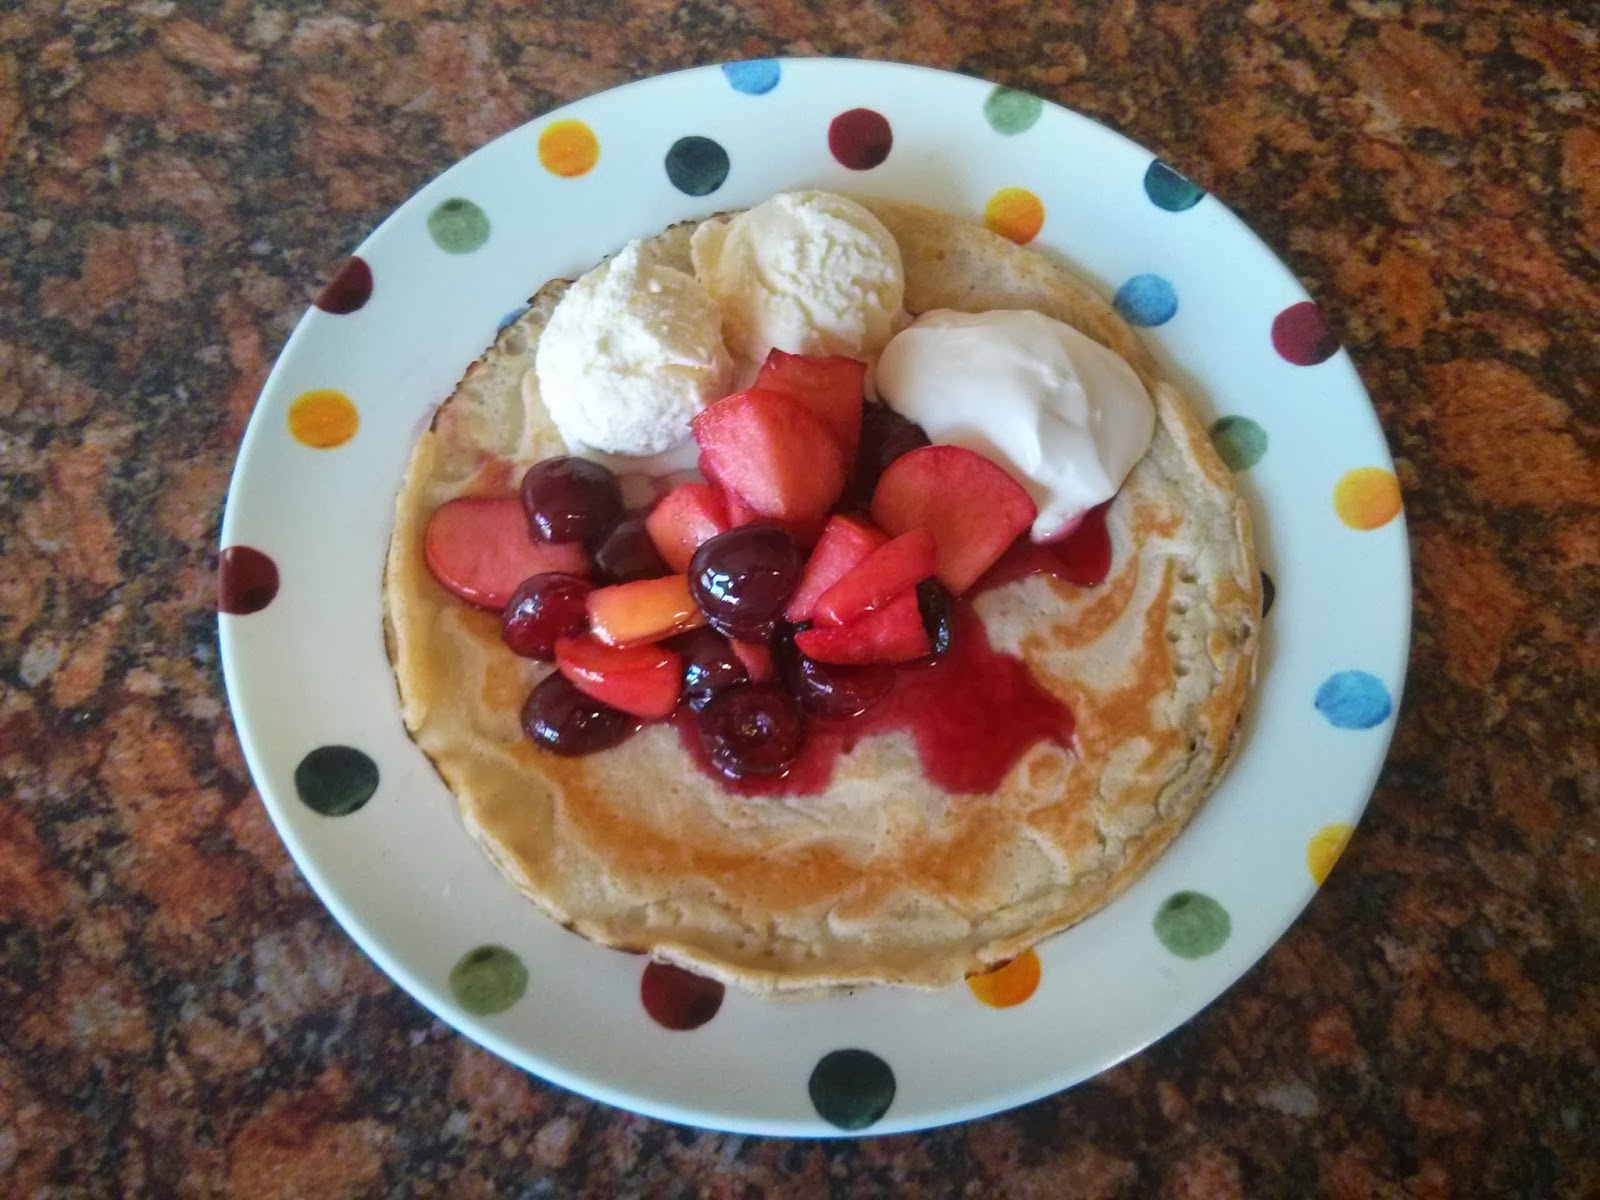 Lashings of Ginger Beer Pancake with Cherries, Apples and other English things